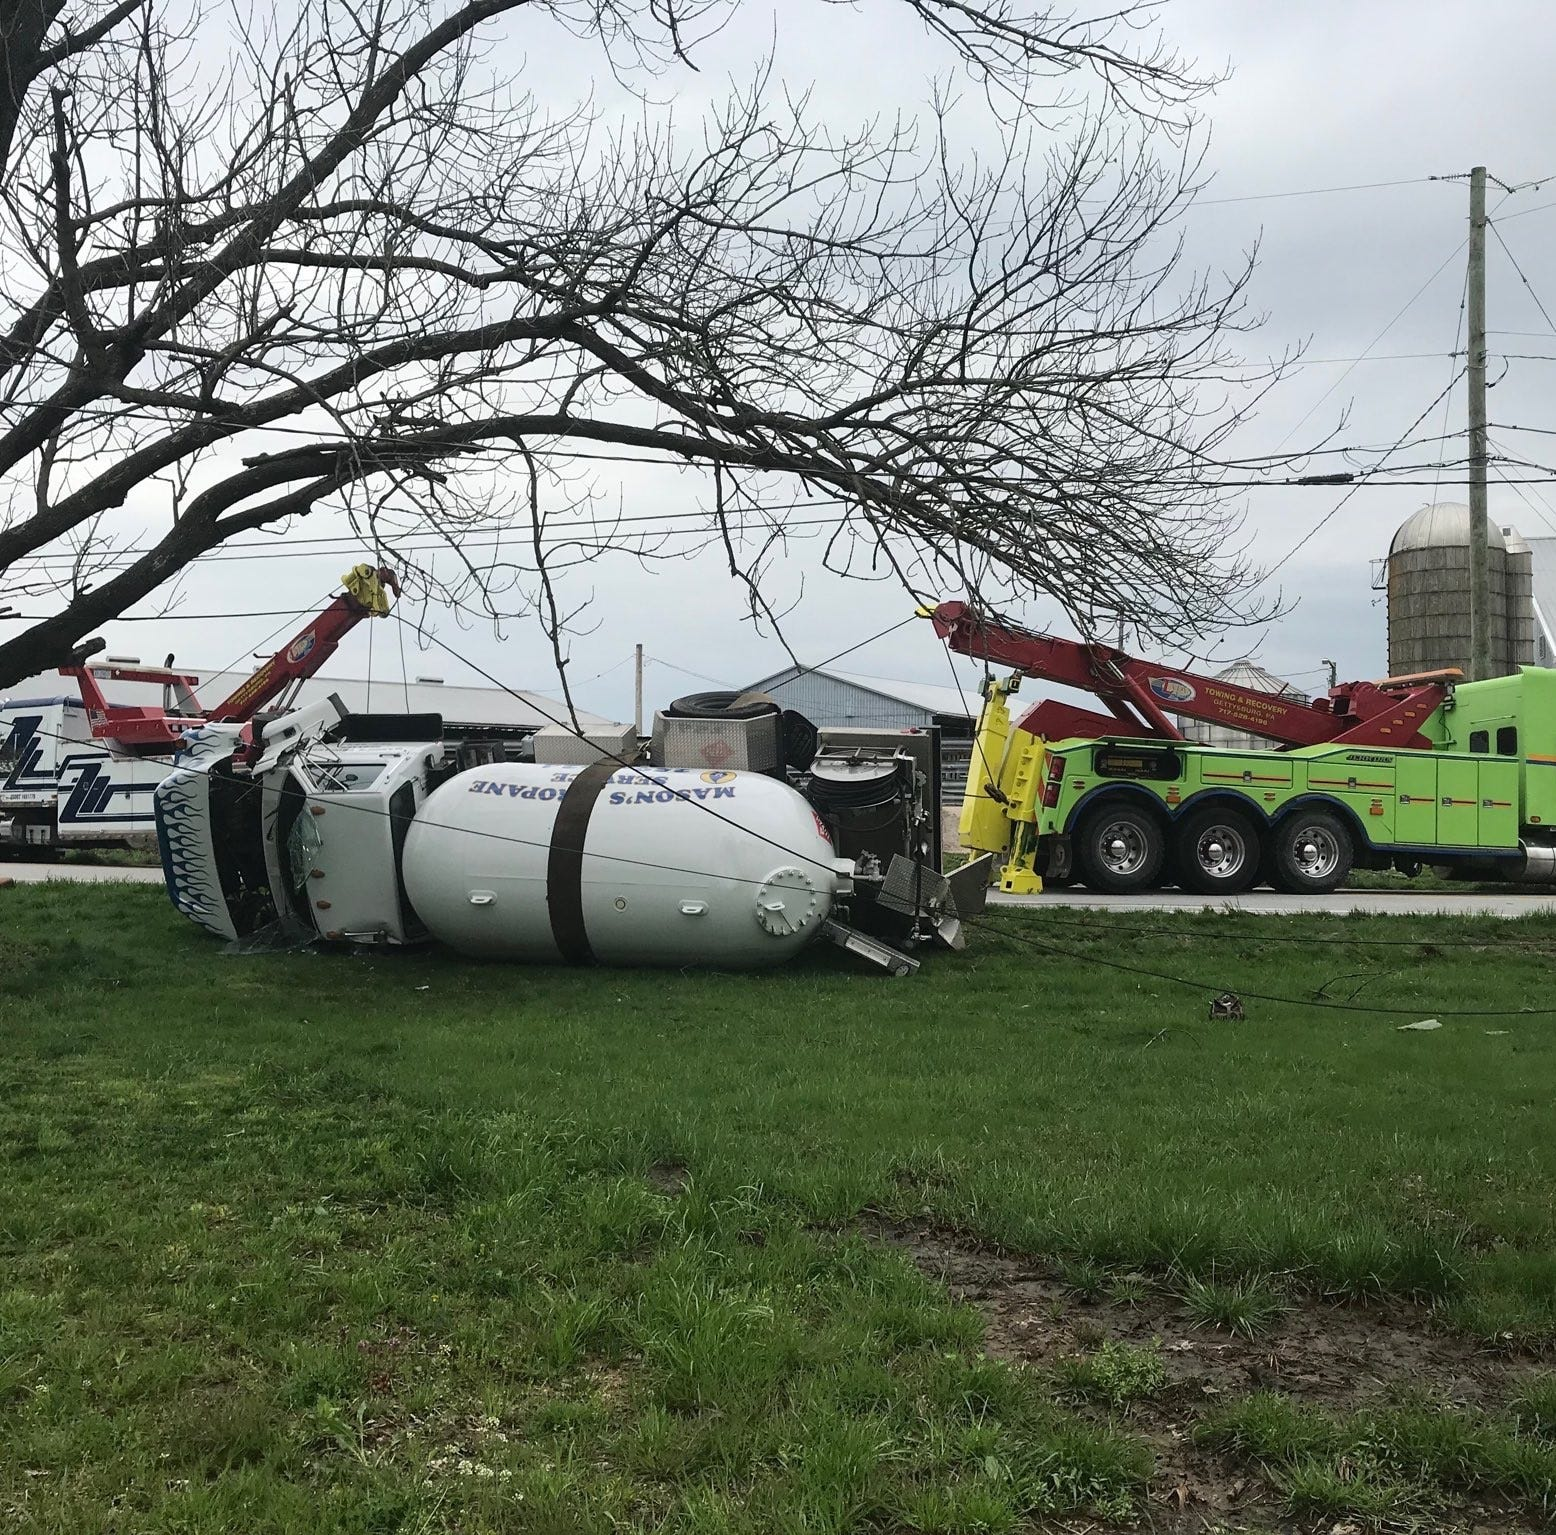 Propane truck overturns into front yard off Reading Township road